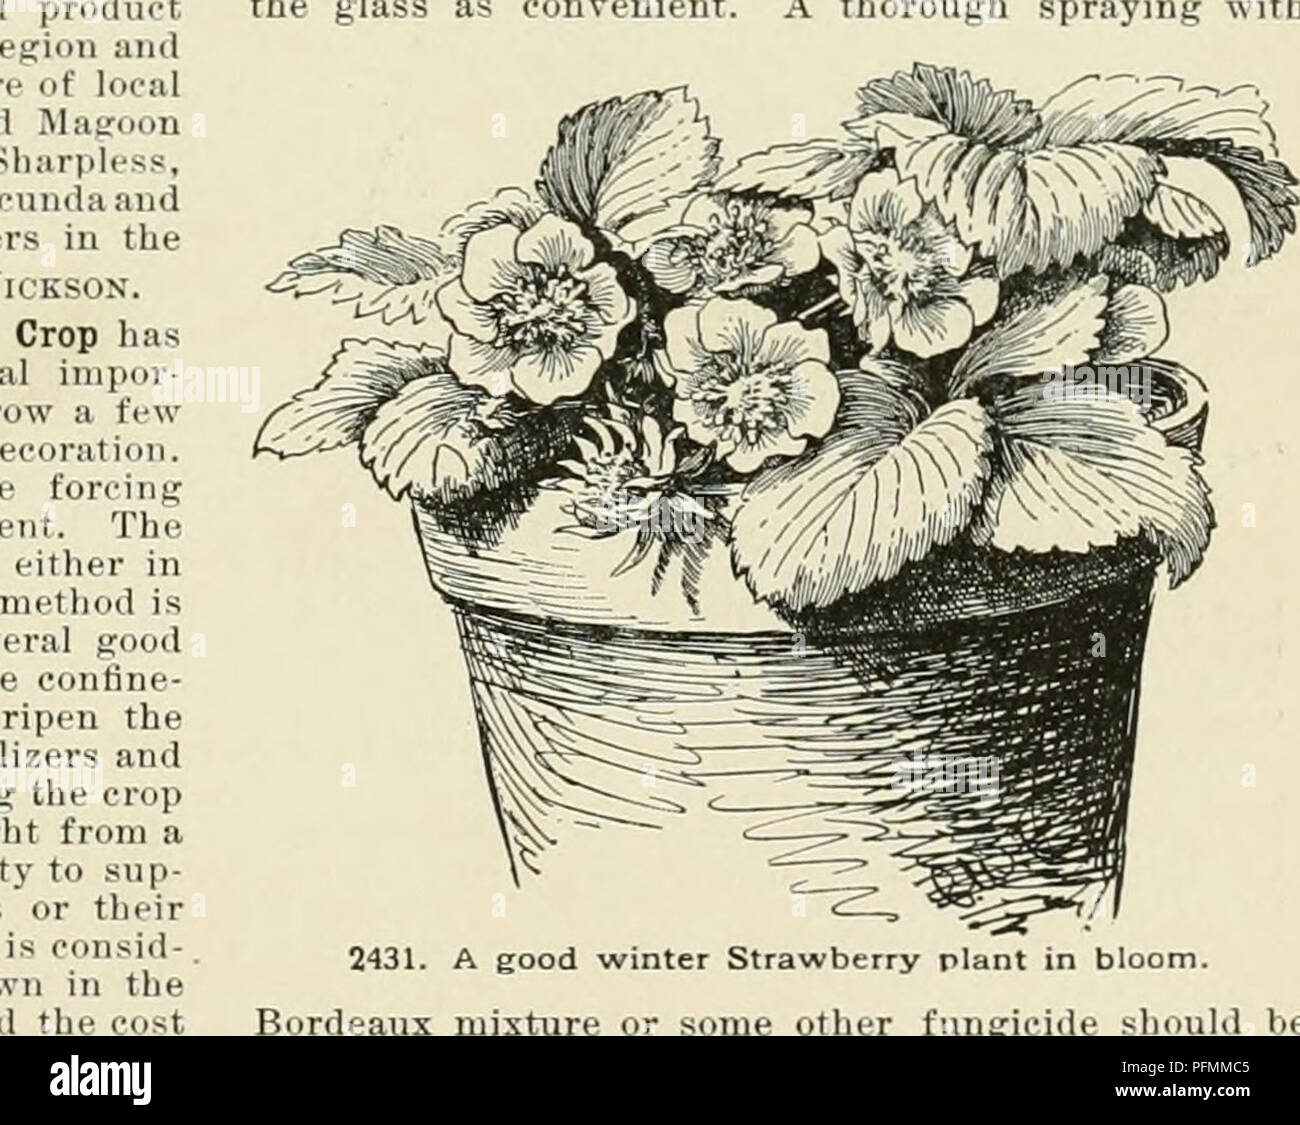 . Cyclopedia of American horticulture, comprising suggestions for cultivation of horticultural plants, descriptions of the species of fruits, vegetables, flowers, and ornamental plants sold in the United States and Canada, together with geographical and biographical sketches. Gardening. ^^iiis'^;i;;:x',l: and one of gooi soil should have dissolved rock 8 to two bushels should be givei ripening the croi period a large qua sharp sand. This potting nixed with it bone-fiour or the rate of about one pint of soil. Ample drainage as through the season of is and the following forcing itity of water mu Stock Photo